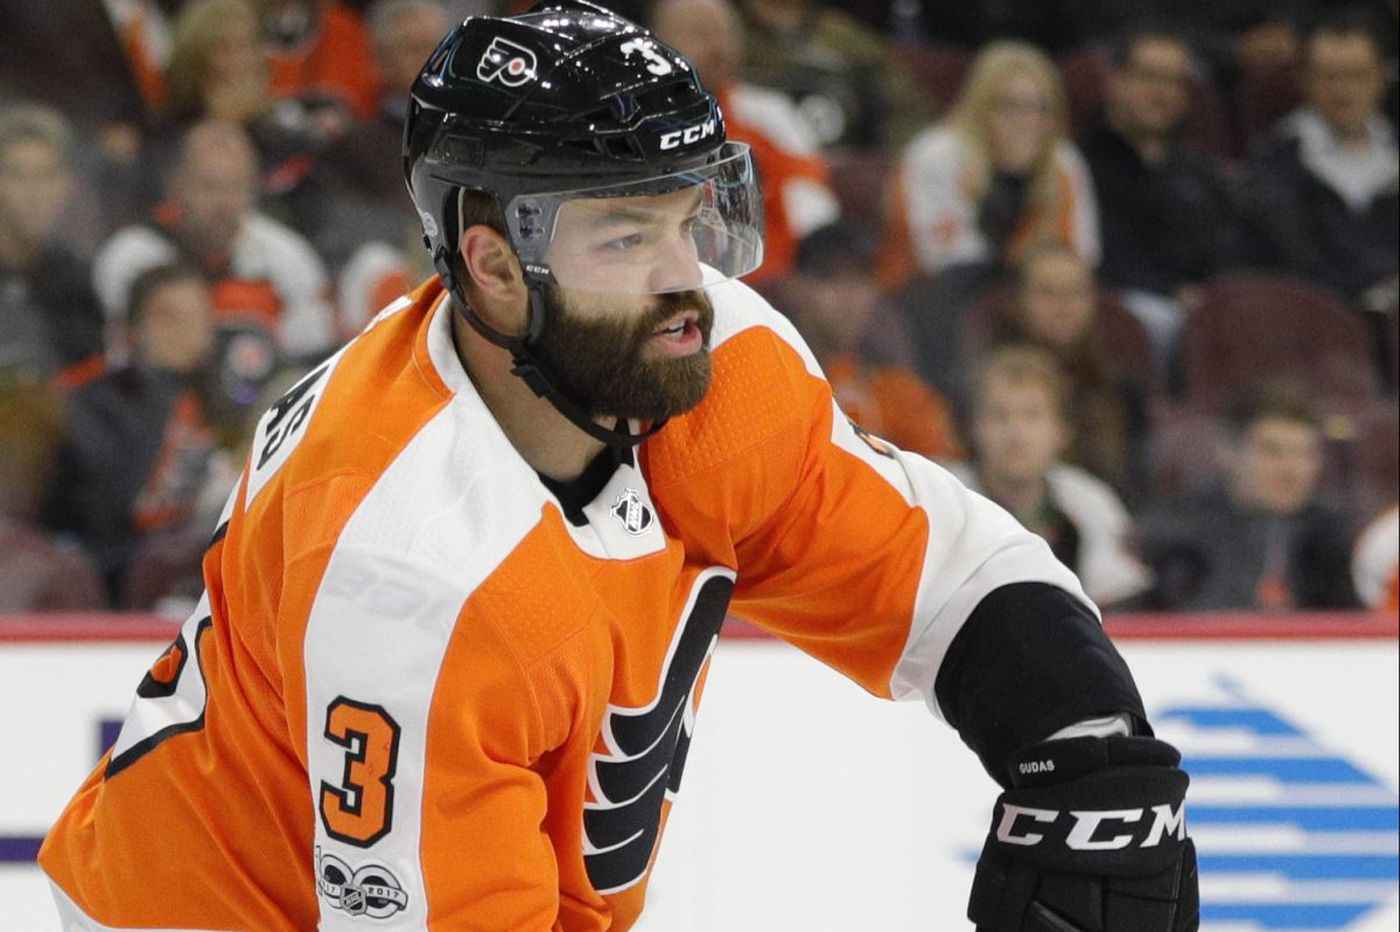 Flyers-Blues preview: Philly will try to contain surging St. Louis